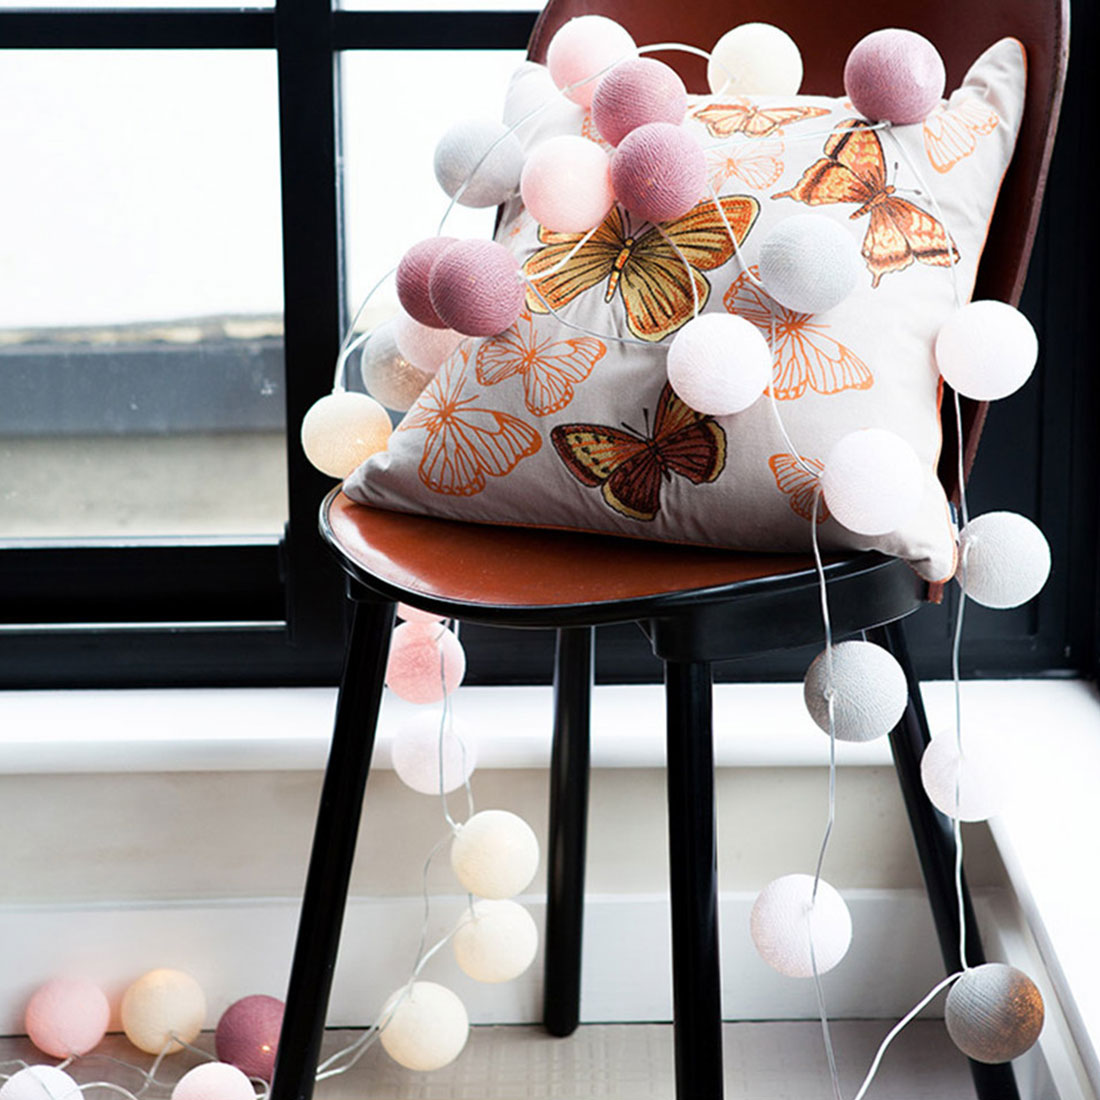 Cotton Ball Decorative String Light Handmade Diy Thread 20